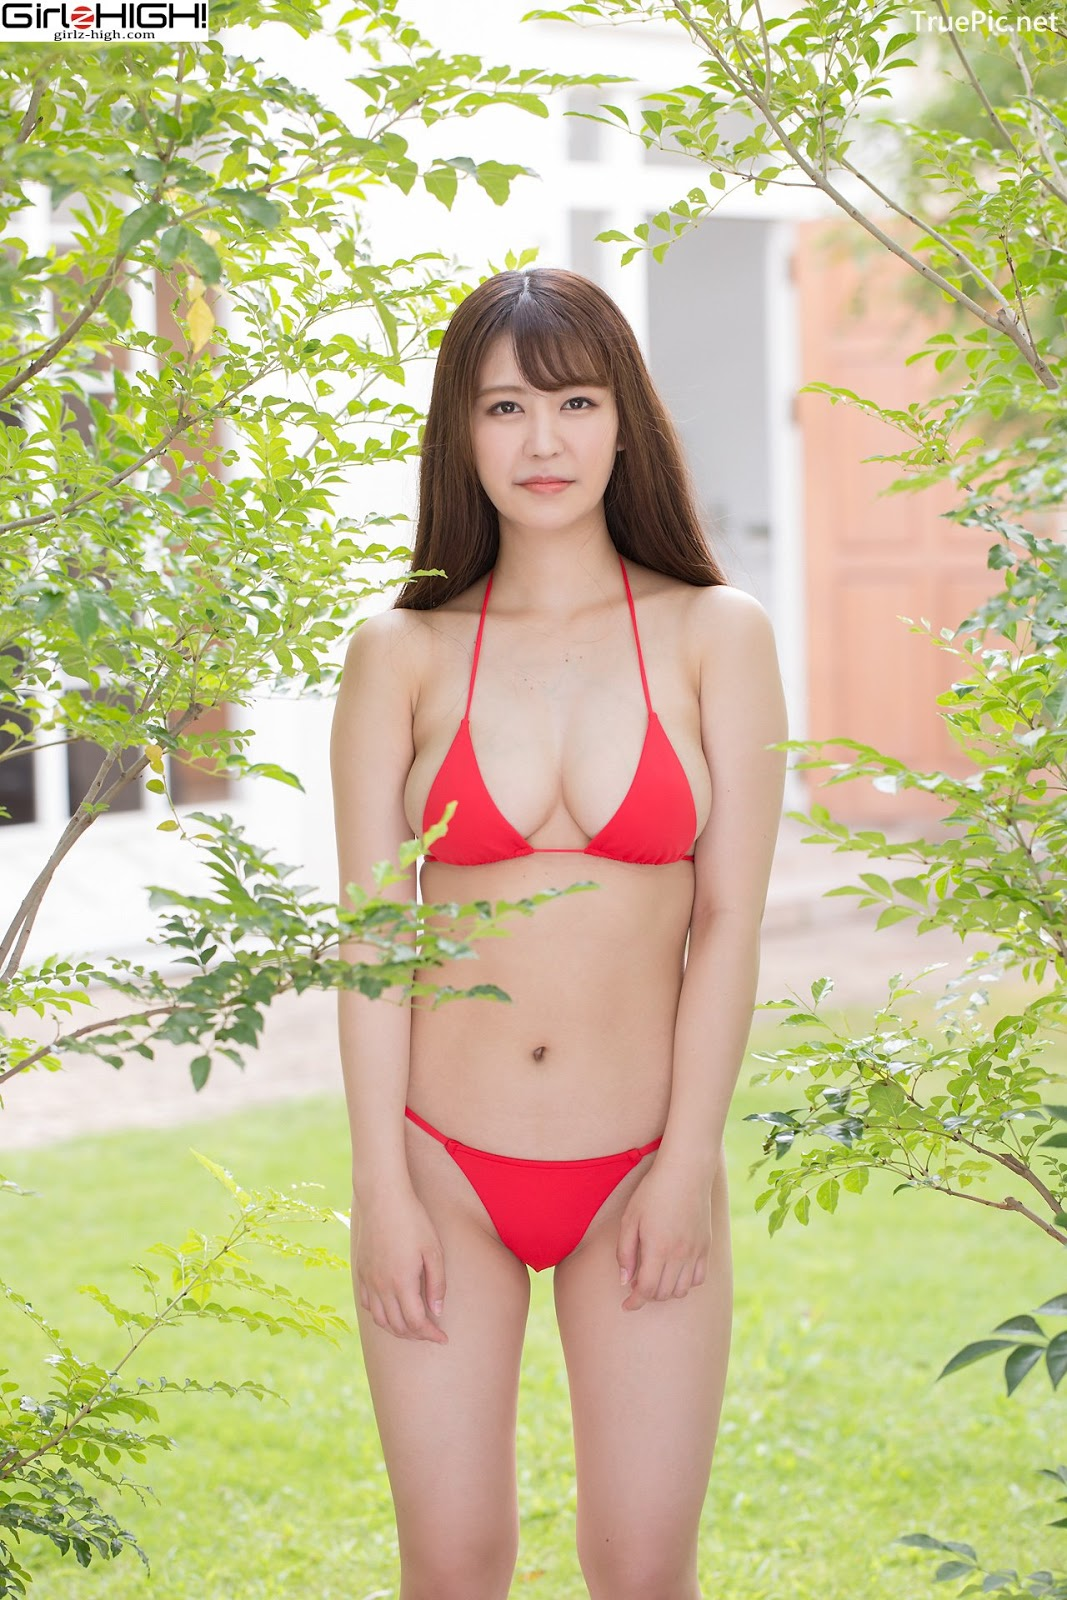 Image Japanese Gravure Idol - Kasumi Yoshinaga - Girlz High Album - TruePic.net - Picture-2